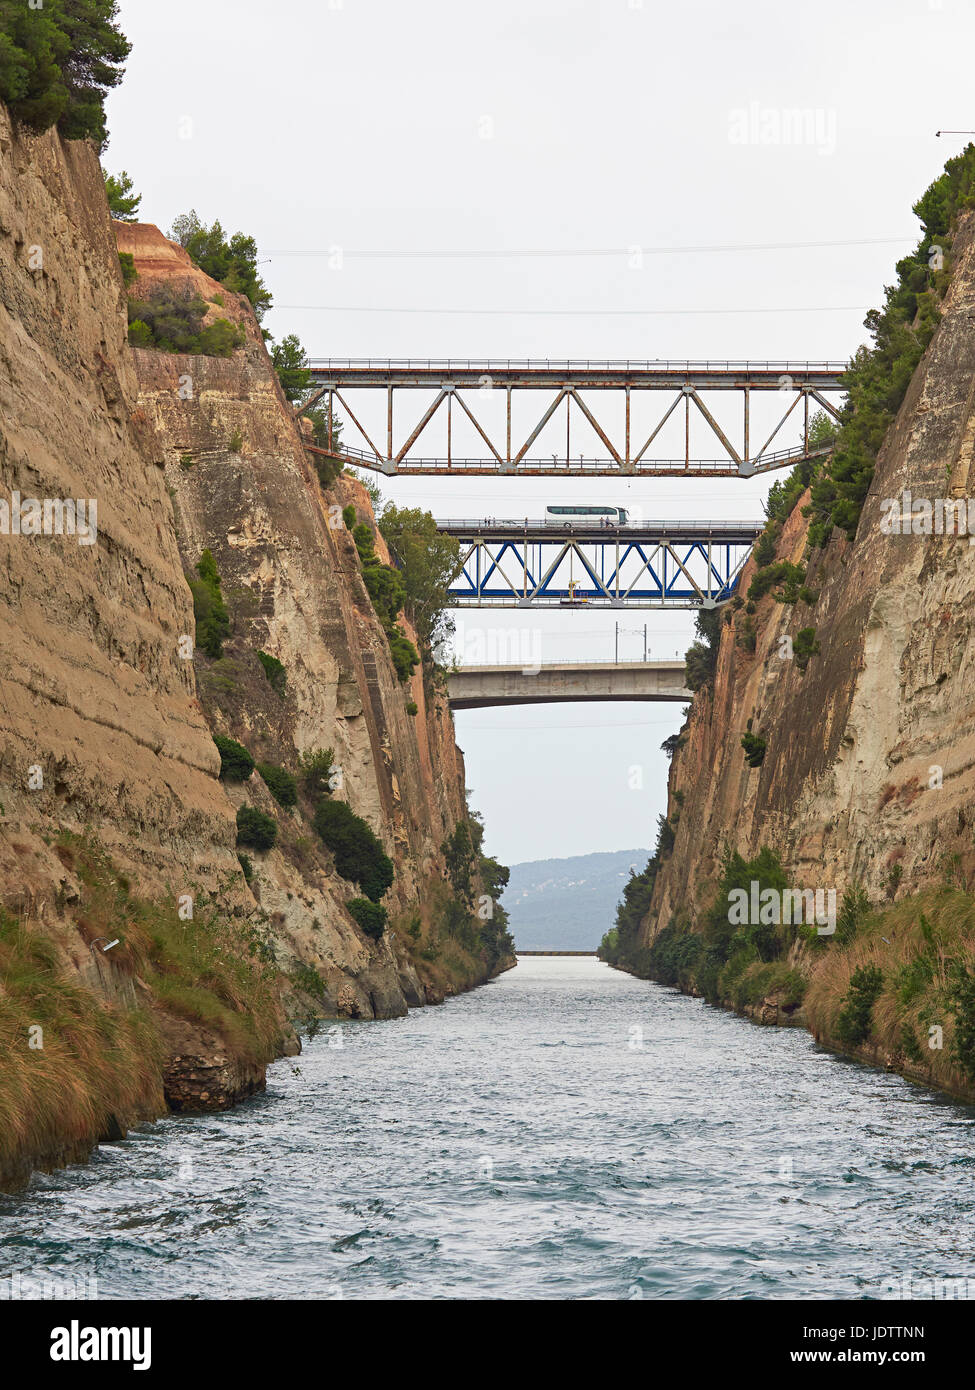 Corinth Canal connects the Gulf of Corinth with the Aegean and cuts through the land that separates the Peloponnese - Stock Image